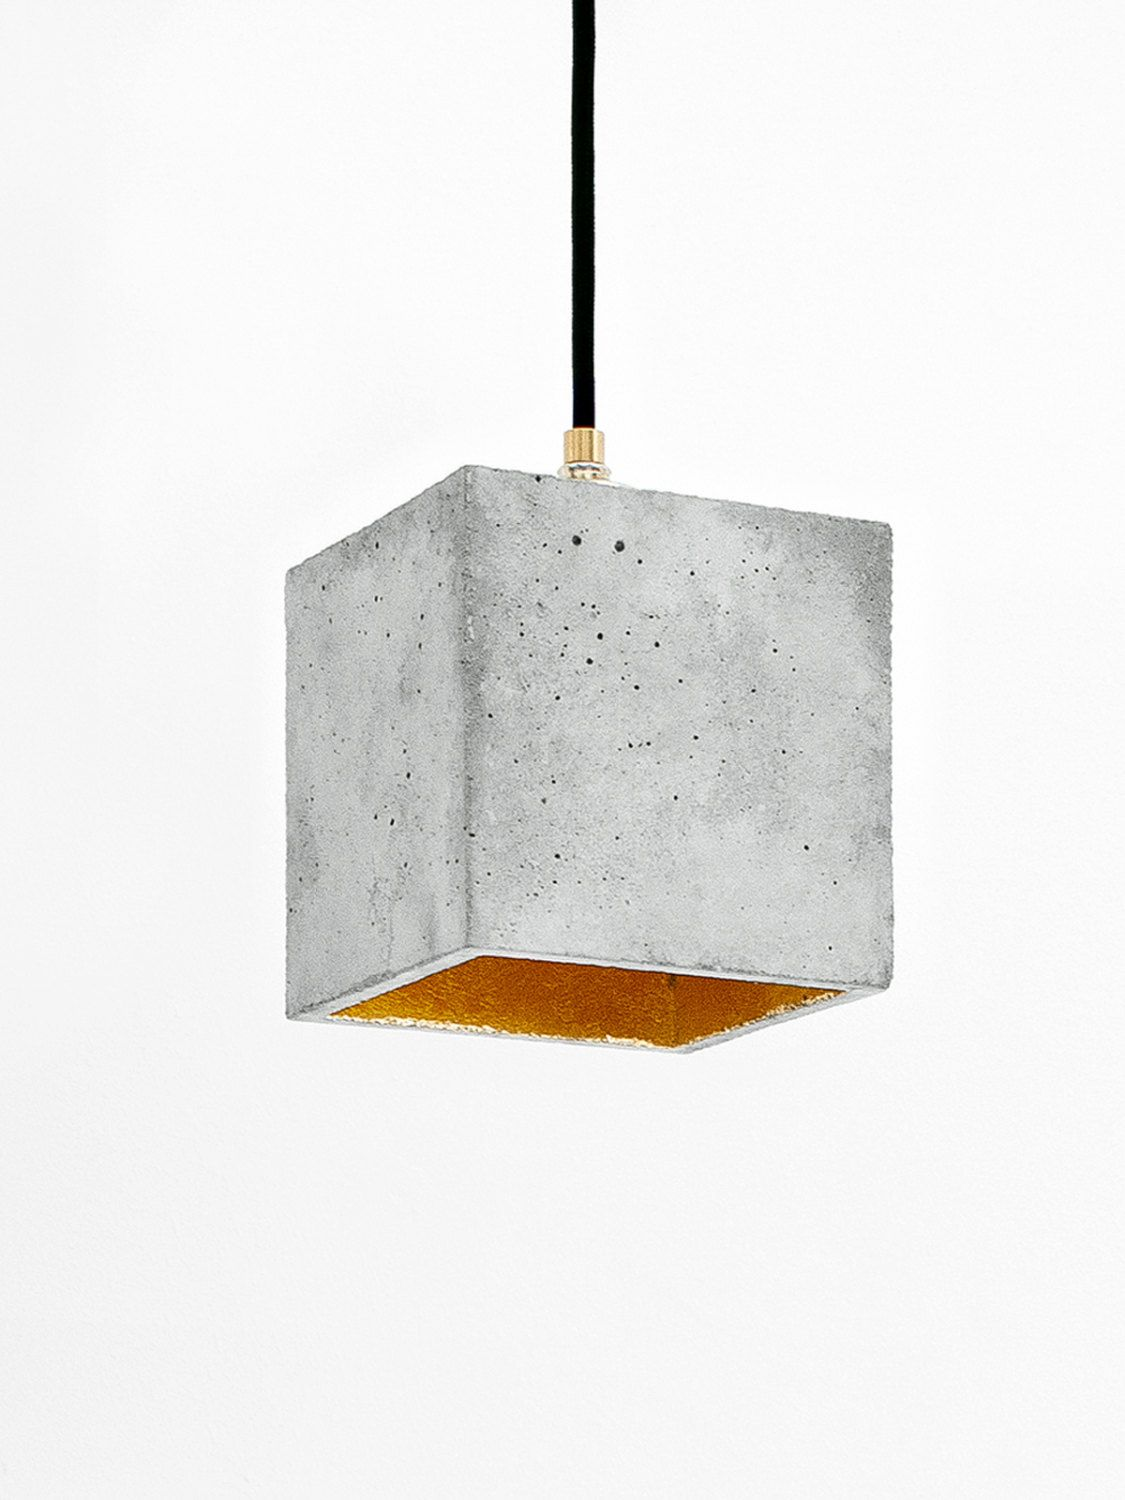 [ The Cubic Hanging Lamp [ Is Cast From A Light Gray Concrete. It Combines  Noble Gold With Rough Concrete Into A Timeless And Elegant Designer Lamp .